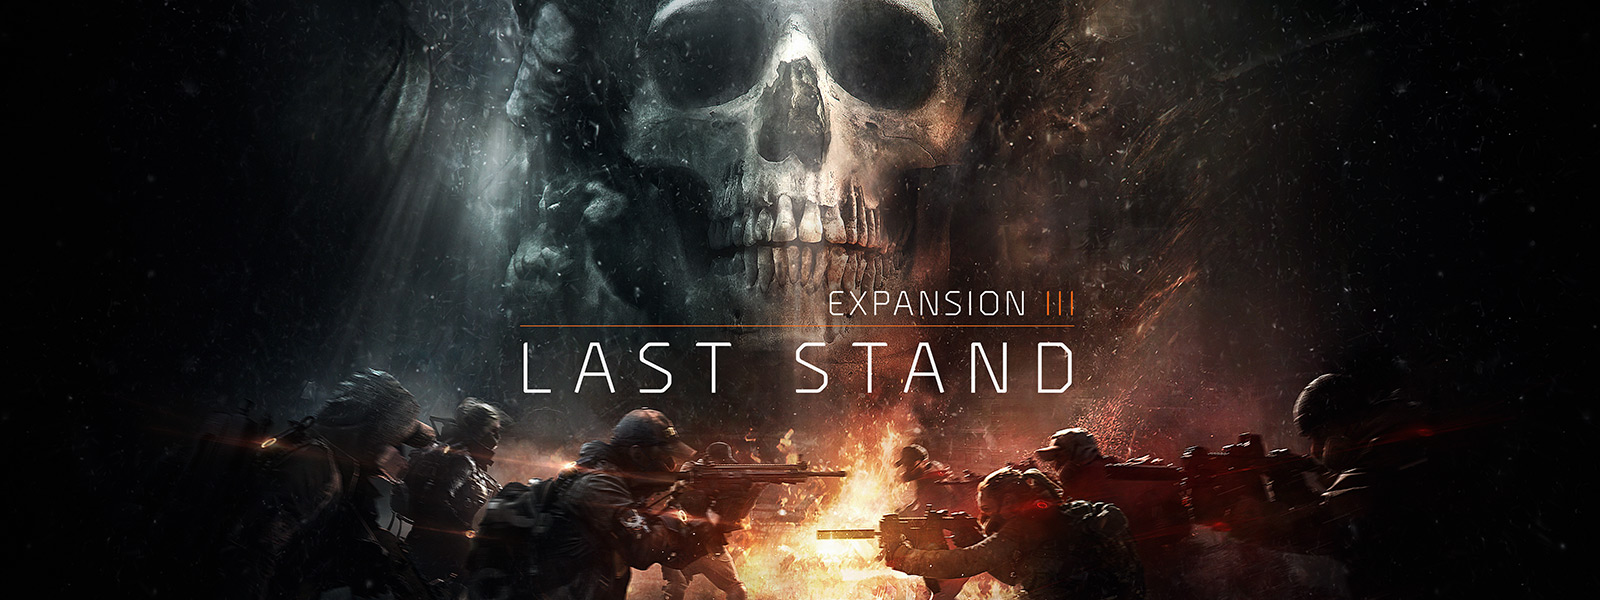 Expansion III: Last Stand